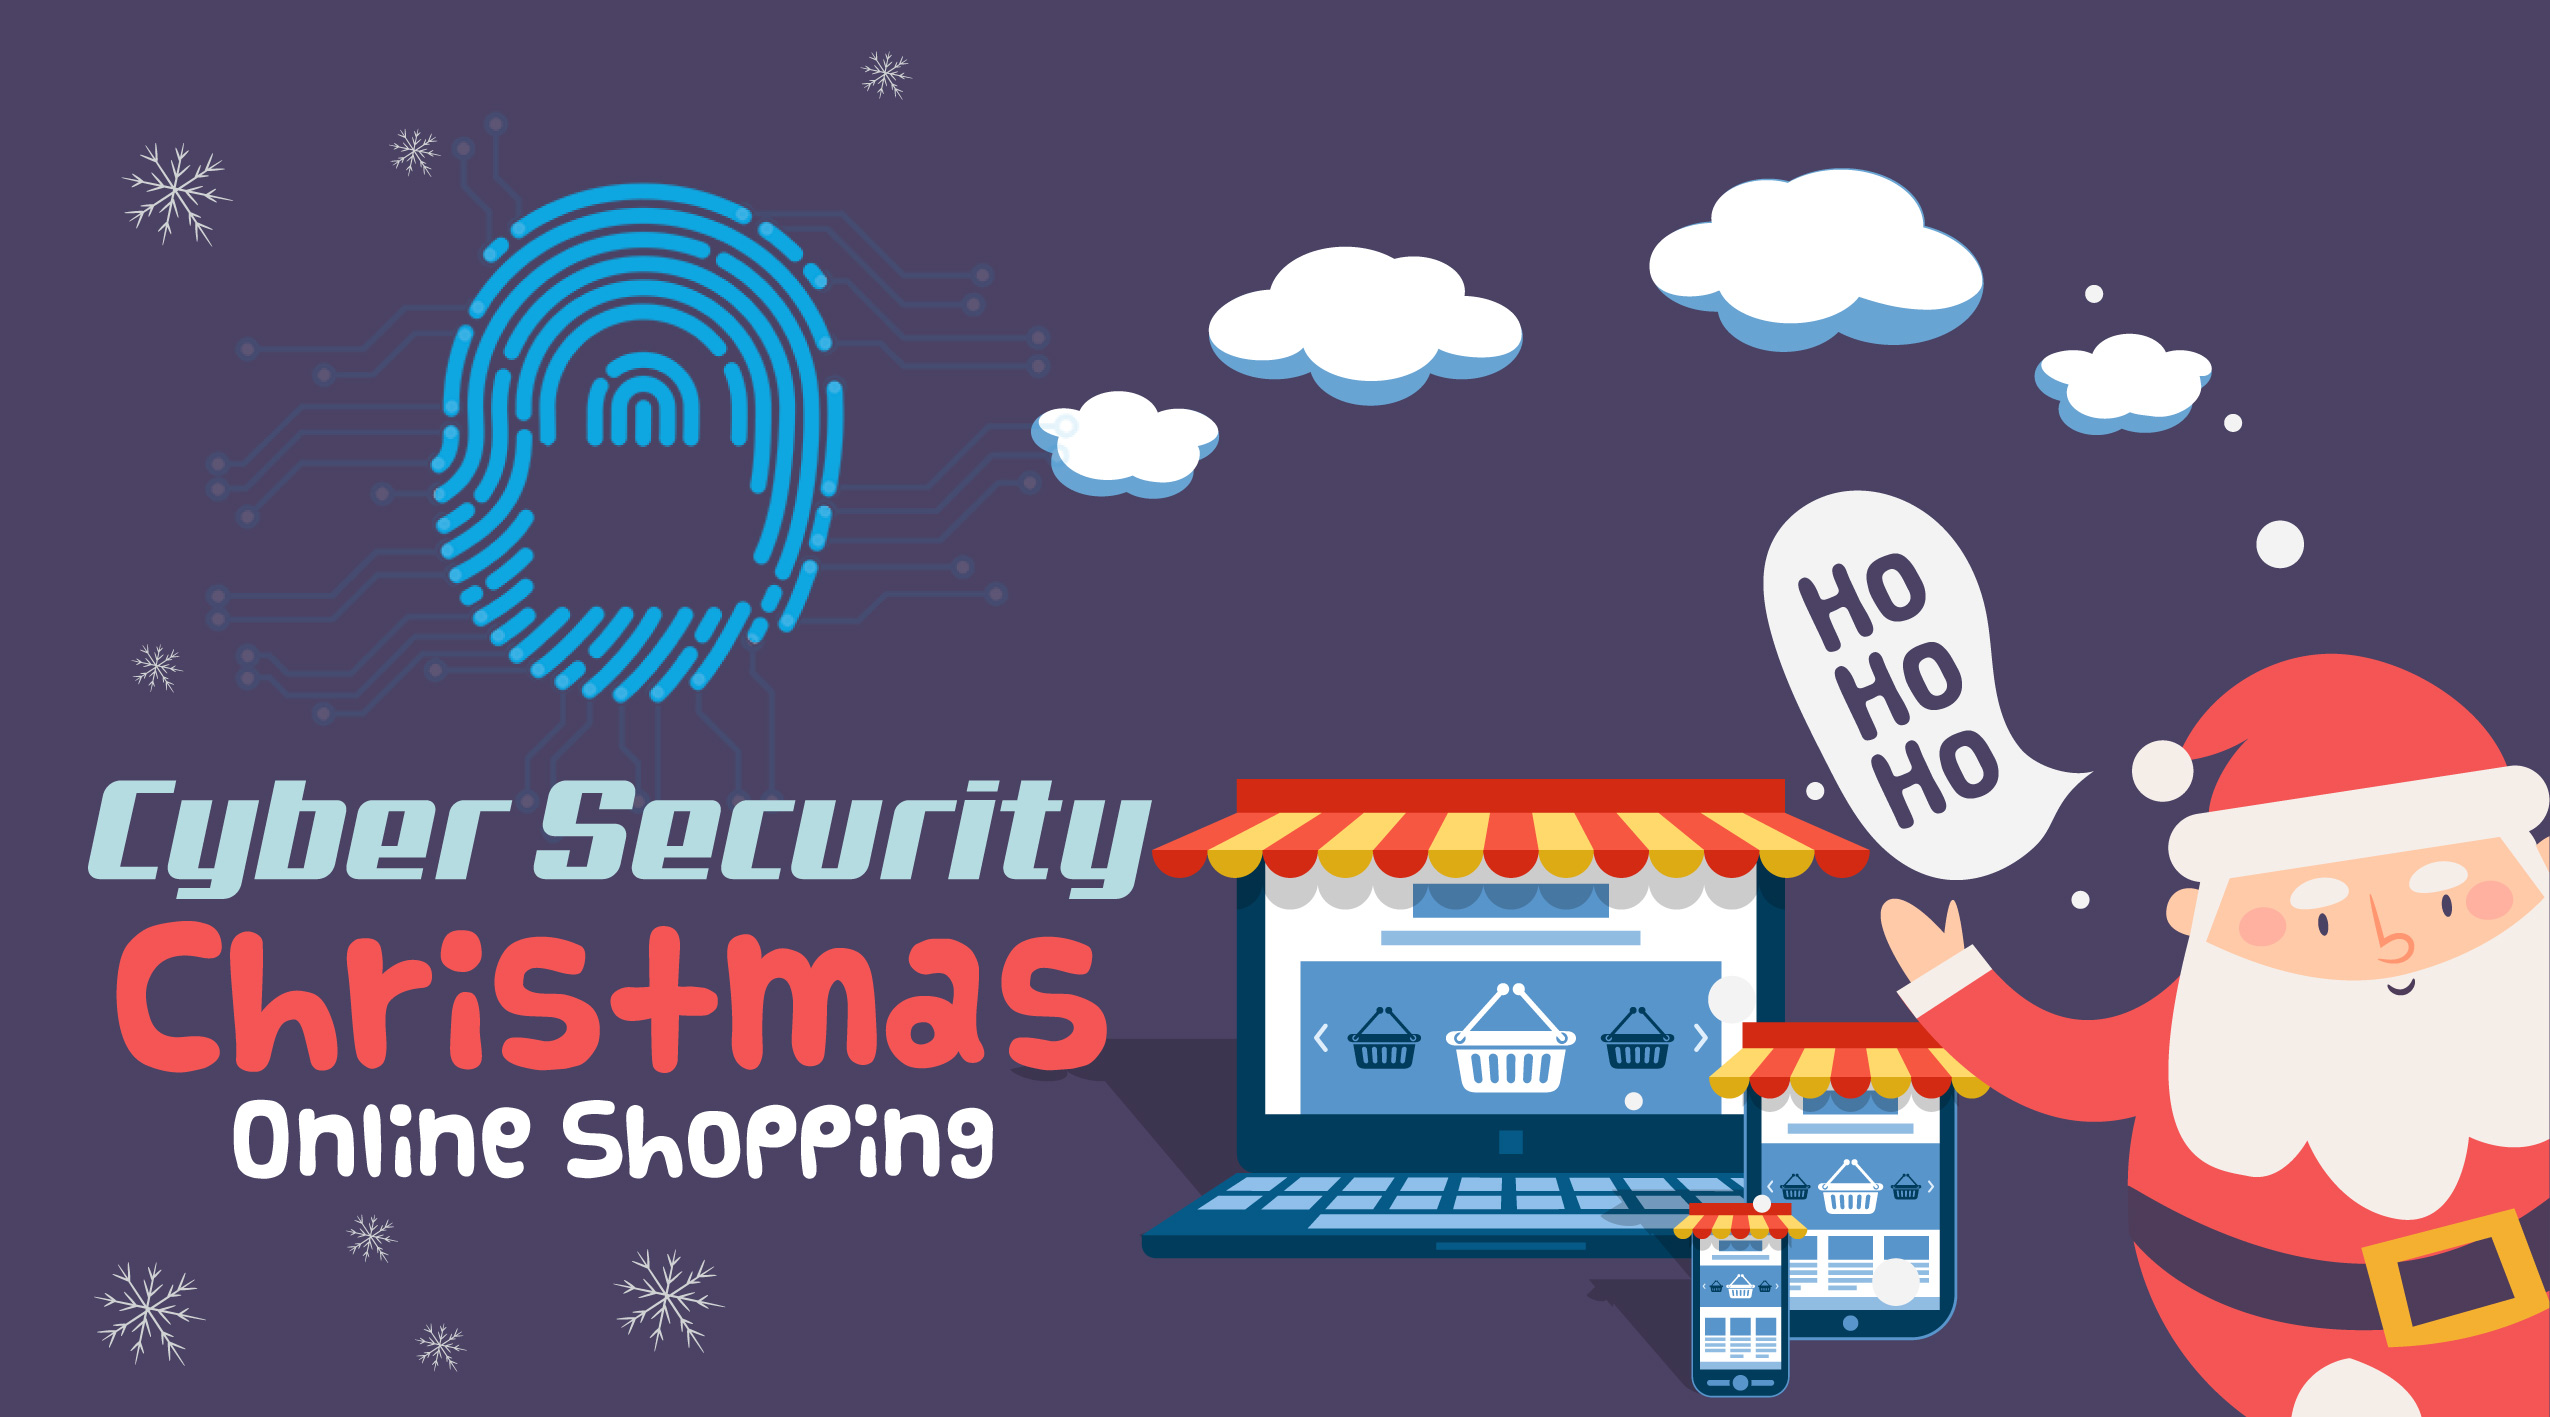 Cyber Security and Online Shopping